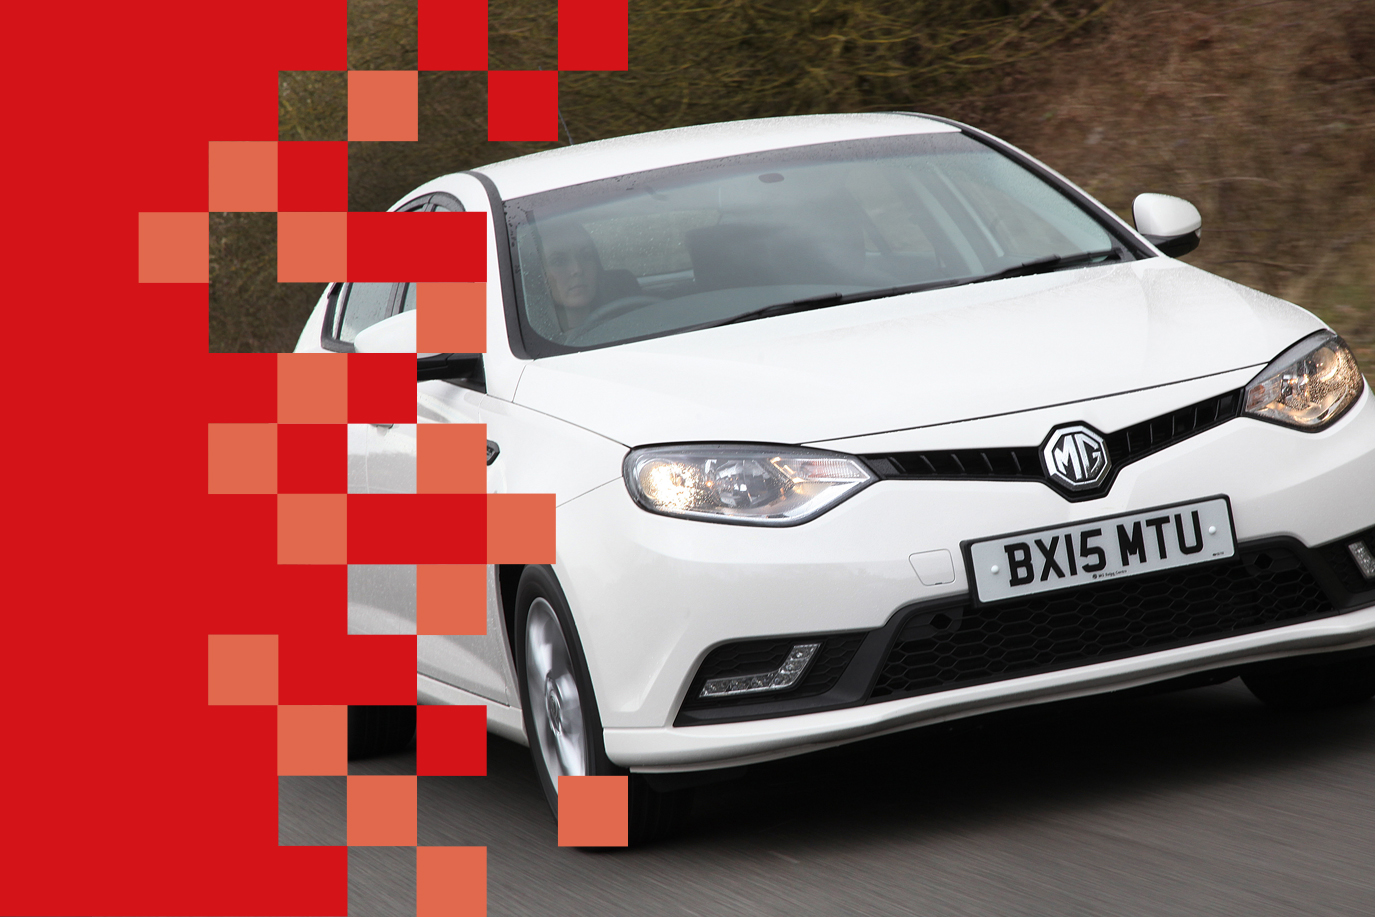 CarShop Celebrates Launch of the MG6 with a Test Drive Event